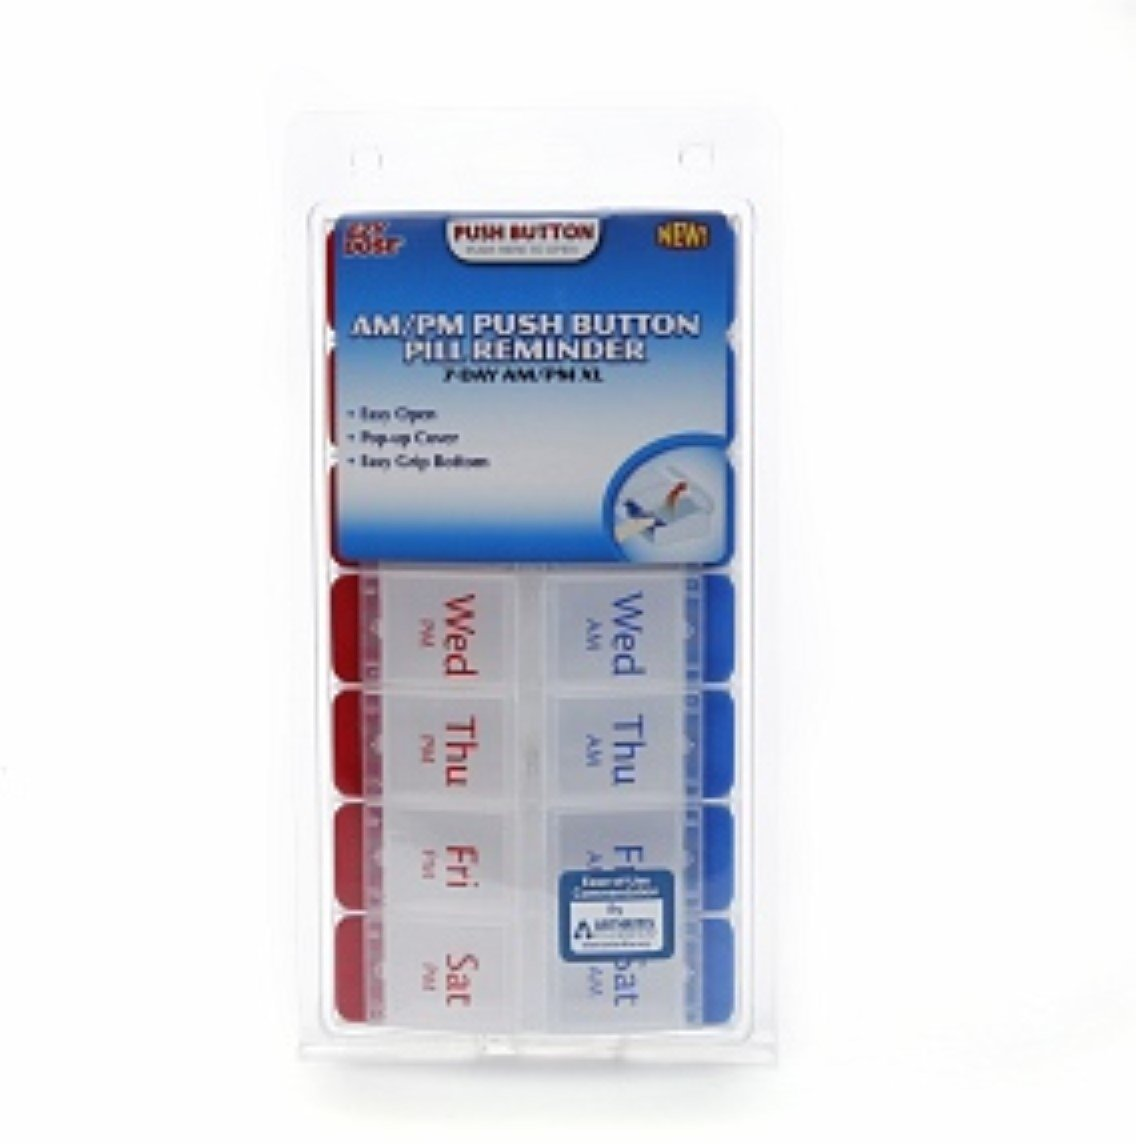 Ezy Dose AM/PM Push Button Pill Reminder 7 Day XL 1 Each (Pack of 8)